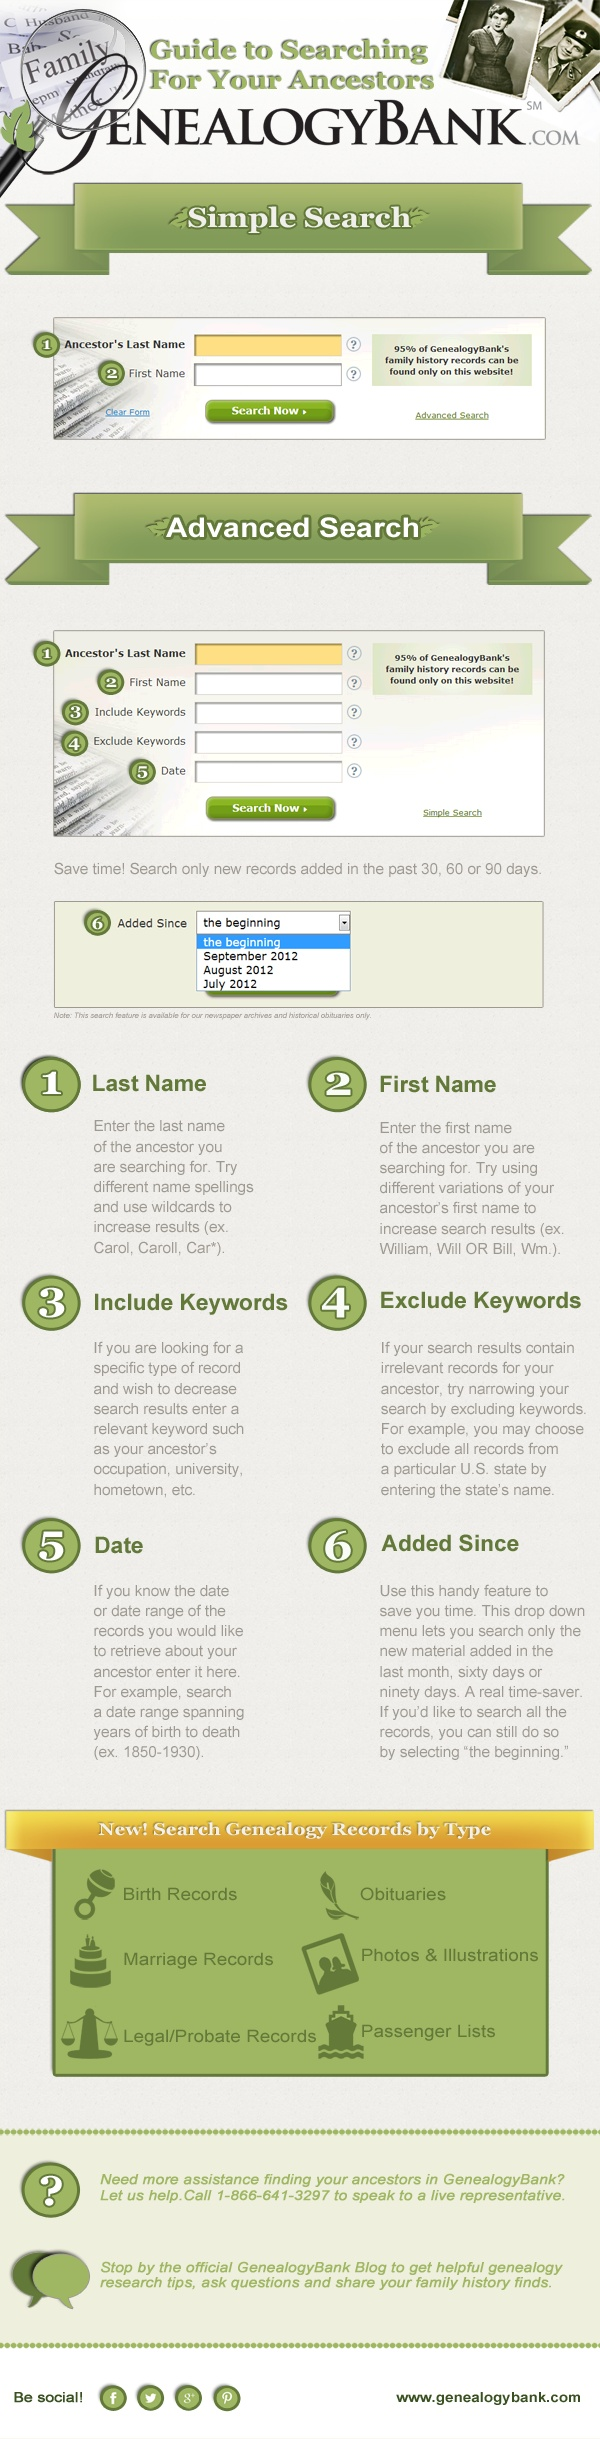 Guide to Searching For Your Ancestors Infographic by GenealogyBank: http://blog.genealogybank.com/genealogybank-ancestor-search-guide.html Pay site, but has a free trial period. Able to search newspaper articles from 1690 to present to find info re ancestors